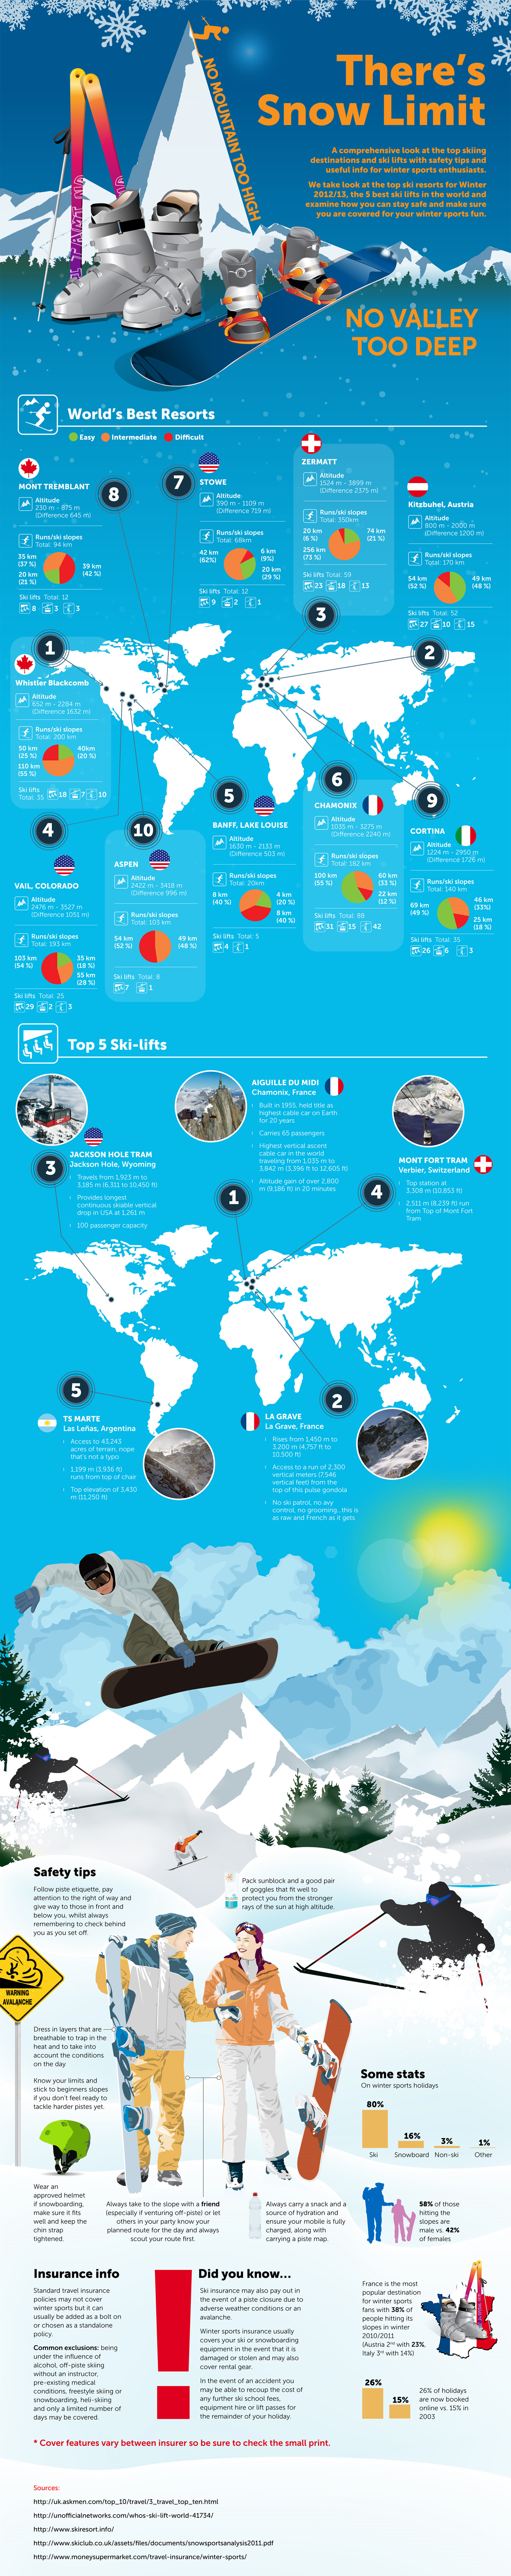 There's Snow Limit Infographic